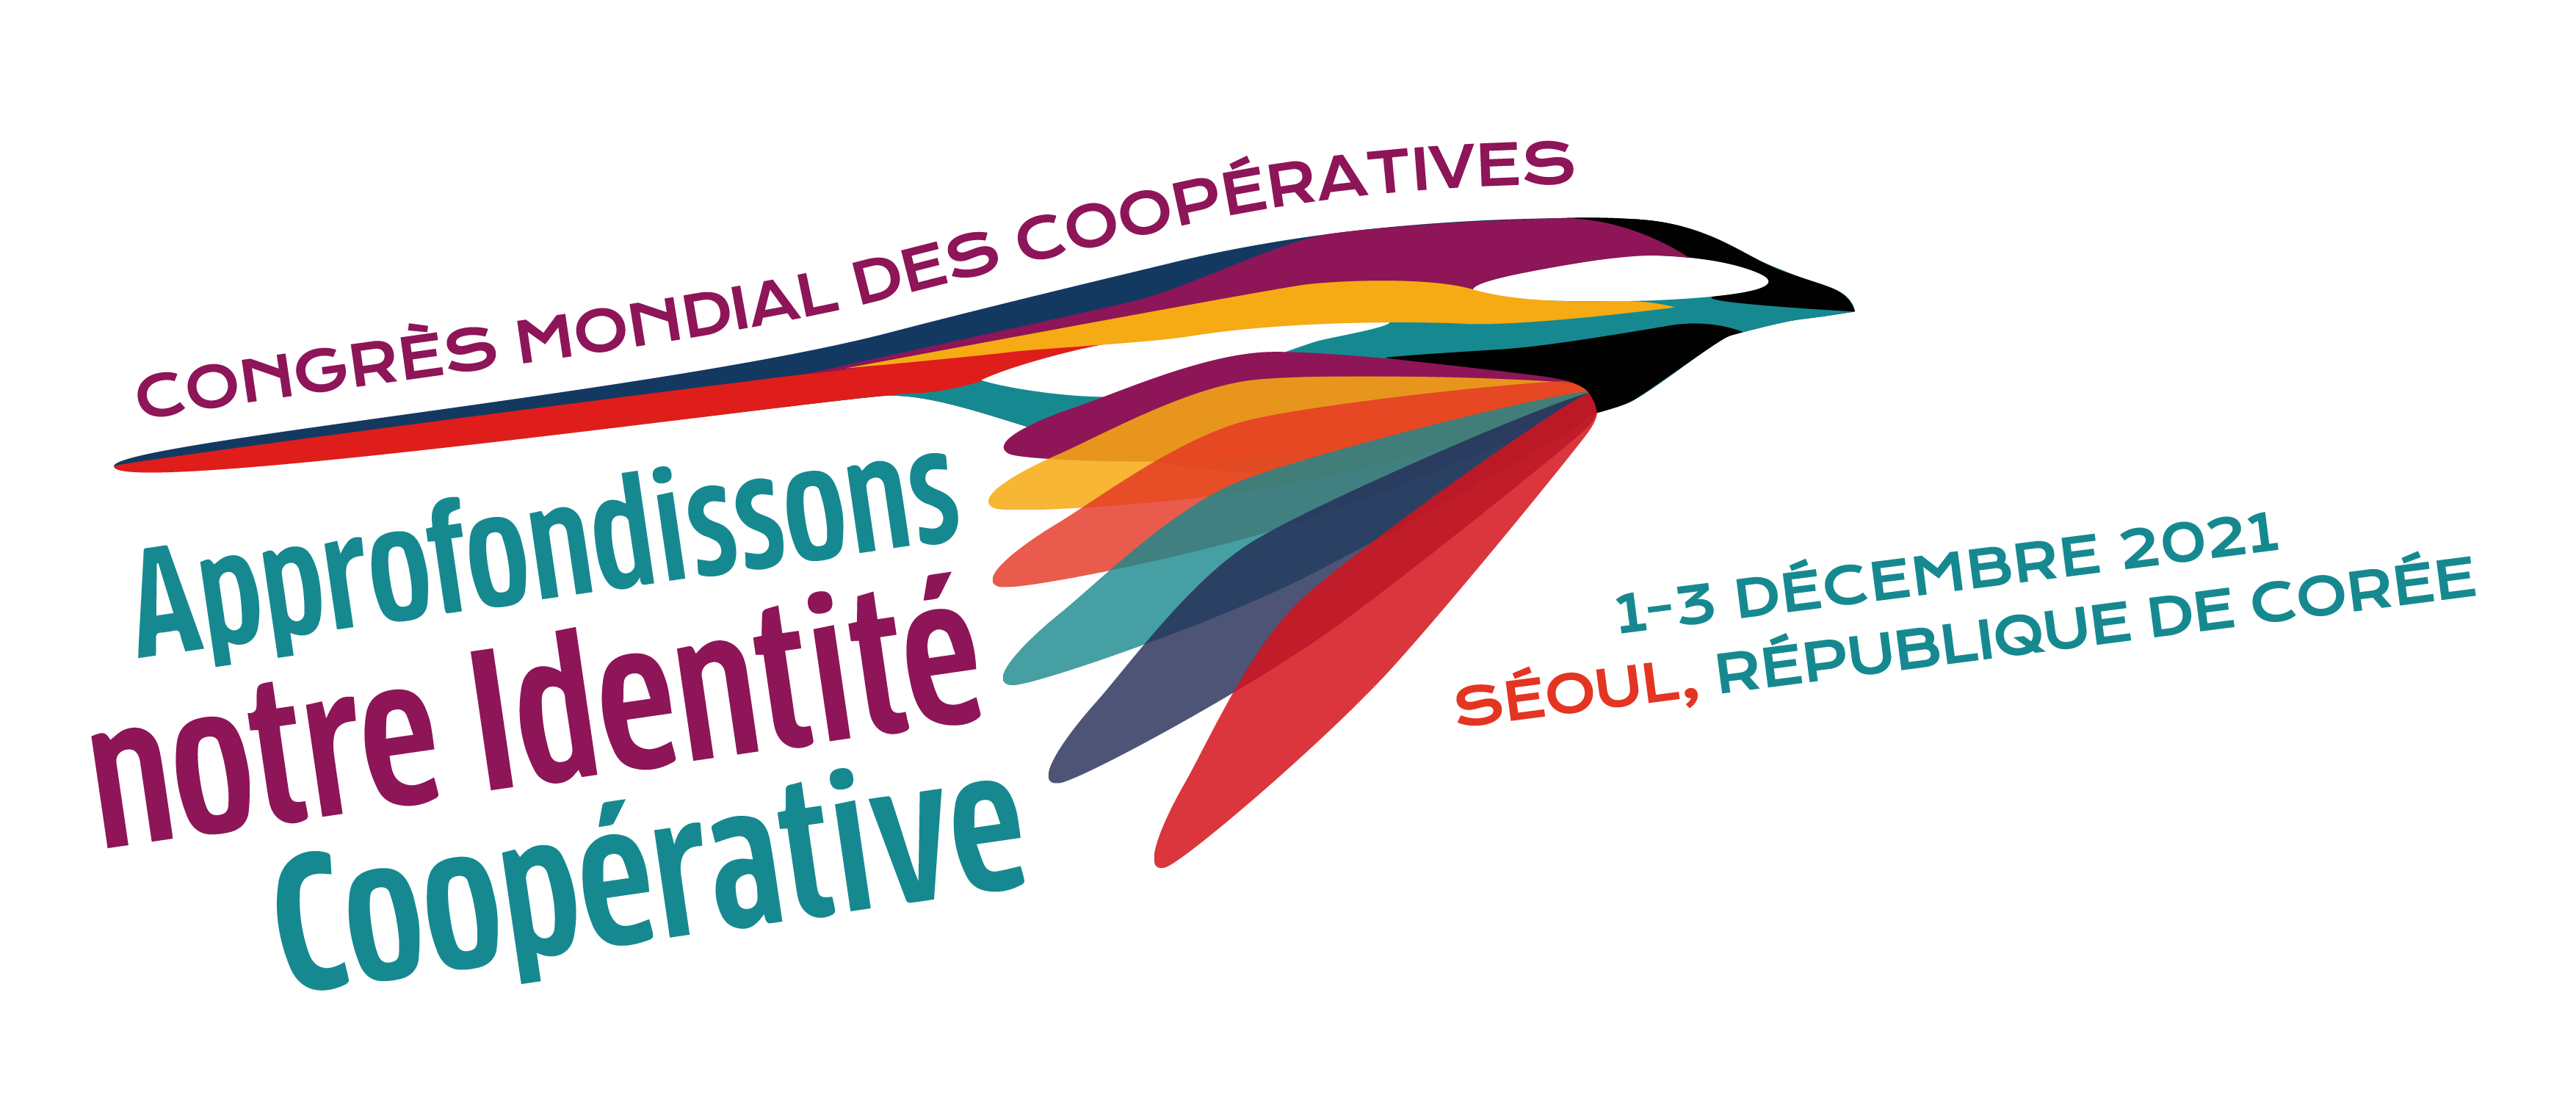 The WCC Logo - 'Deepening our cooperative identity'